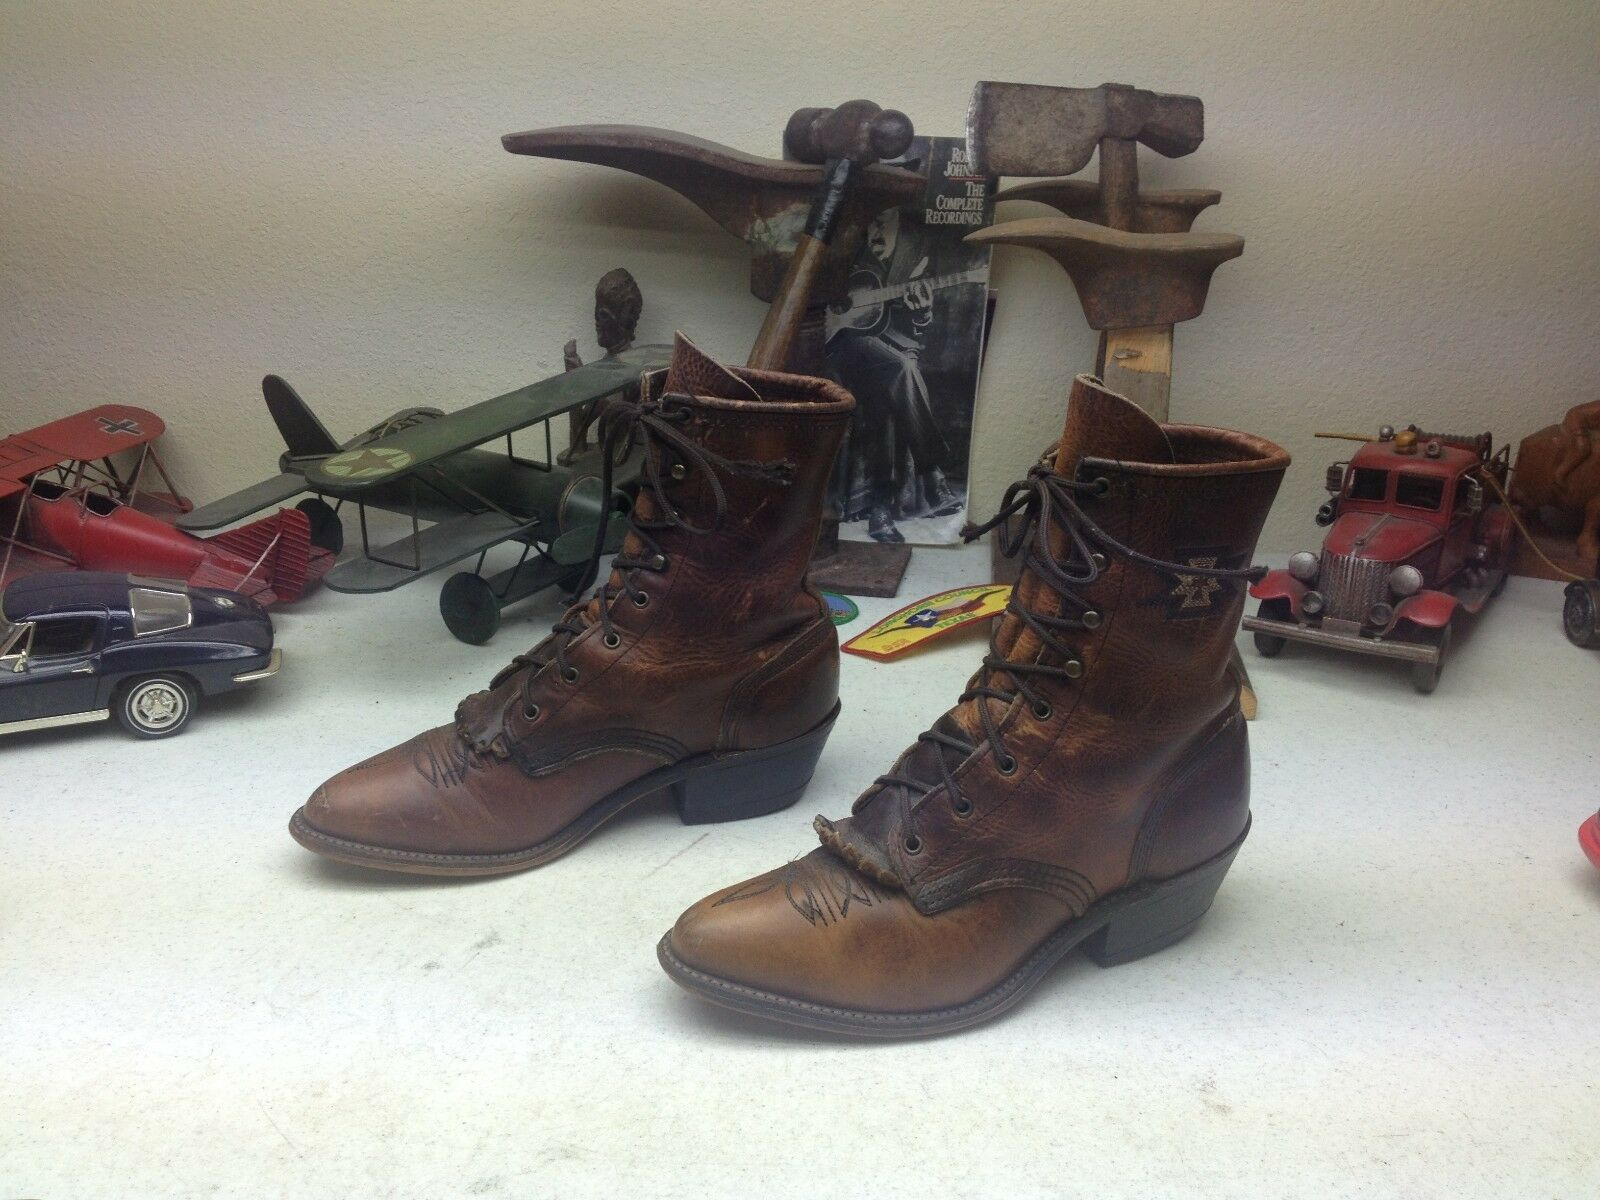 DISTRESSED USA BROWN LEATHER LACE UP GRANNY KILTIE WESTERN WORK CHORE BOOTS 5 M